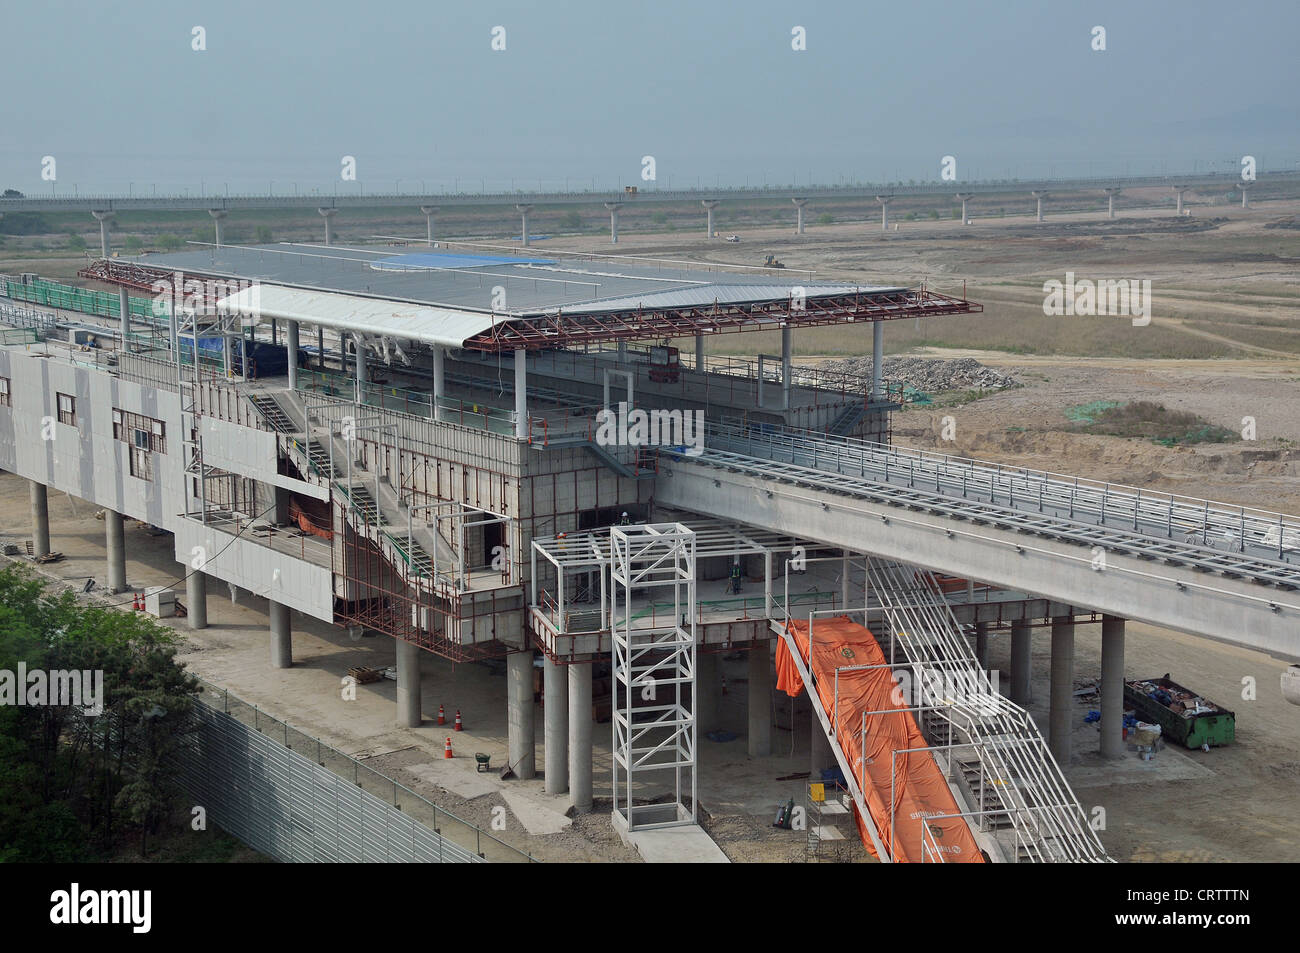 aerial railway station in construction Incheon South Korea Asia - Stock Image